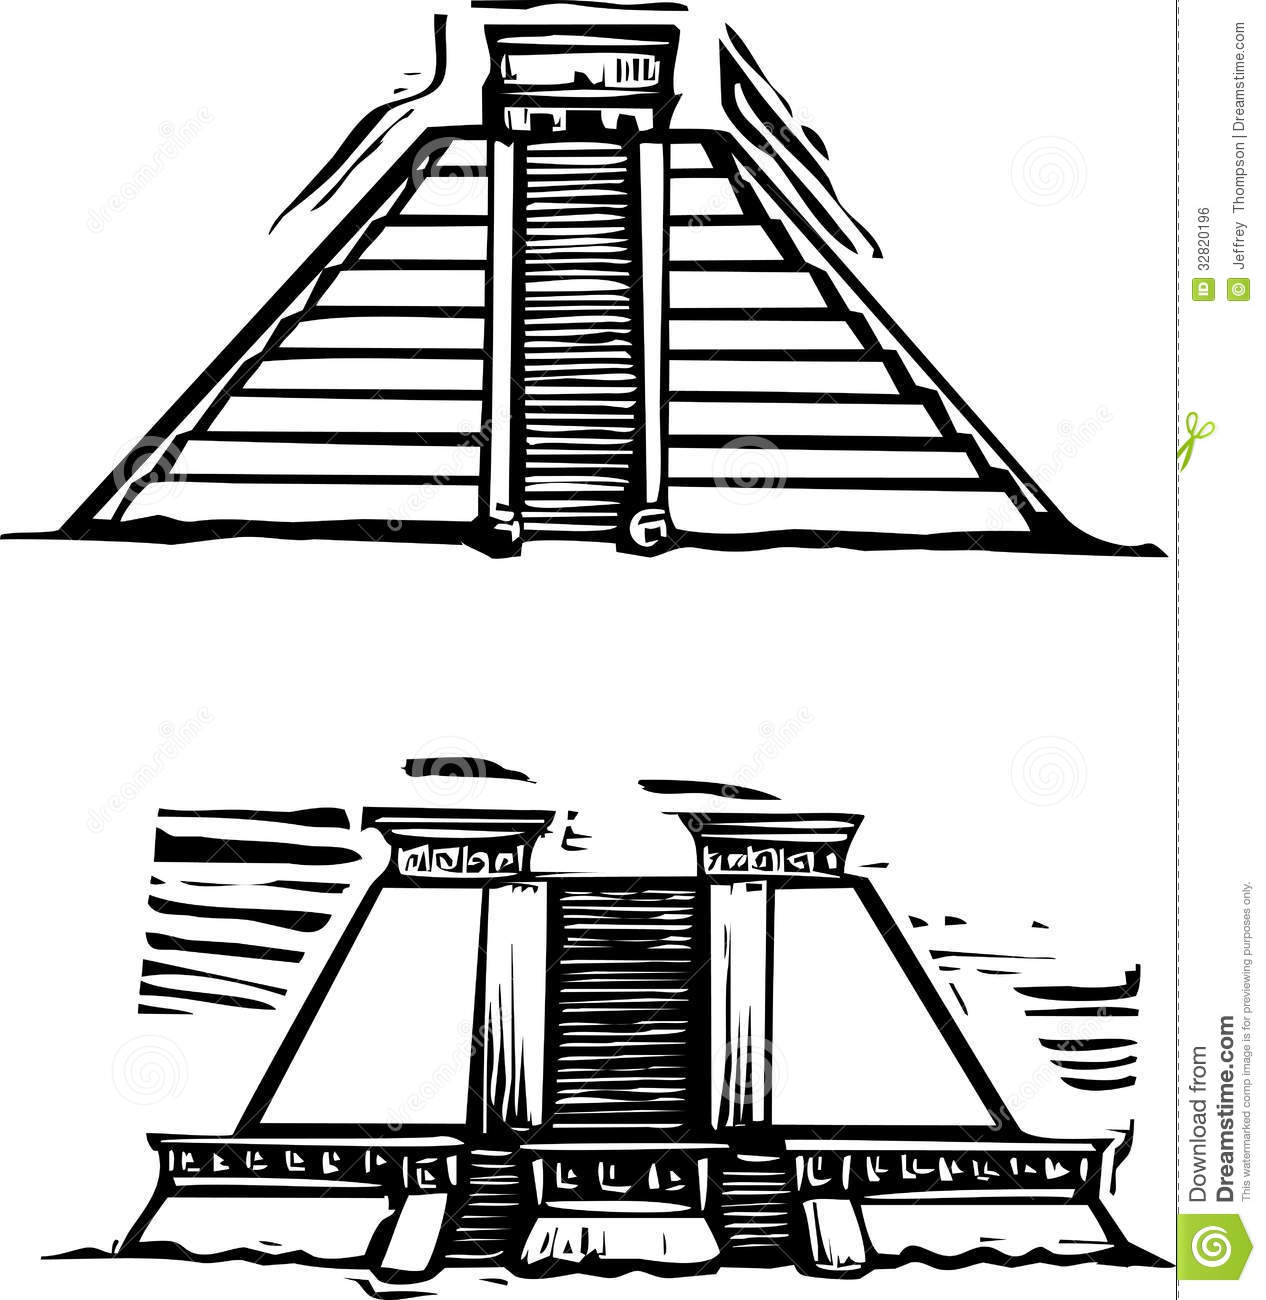 Aztec Pyramids Royalty Free Stock Photography